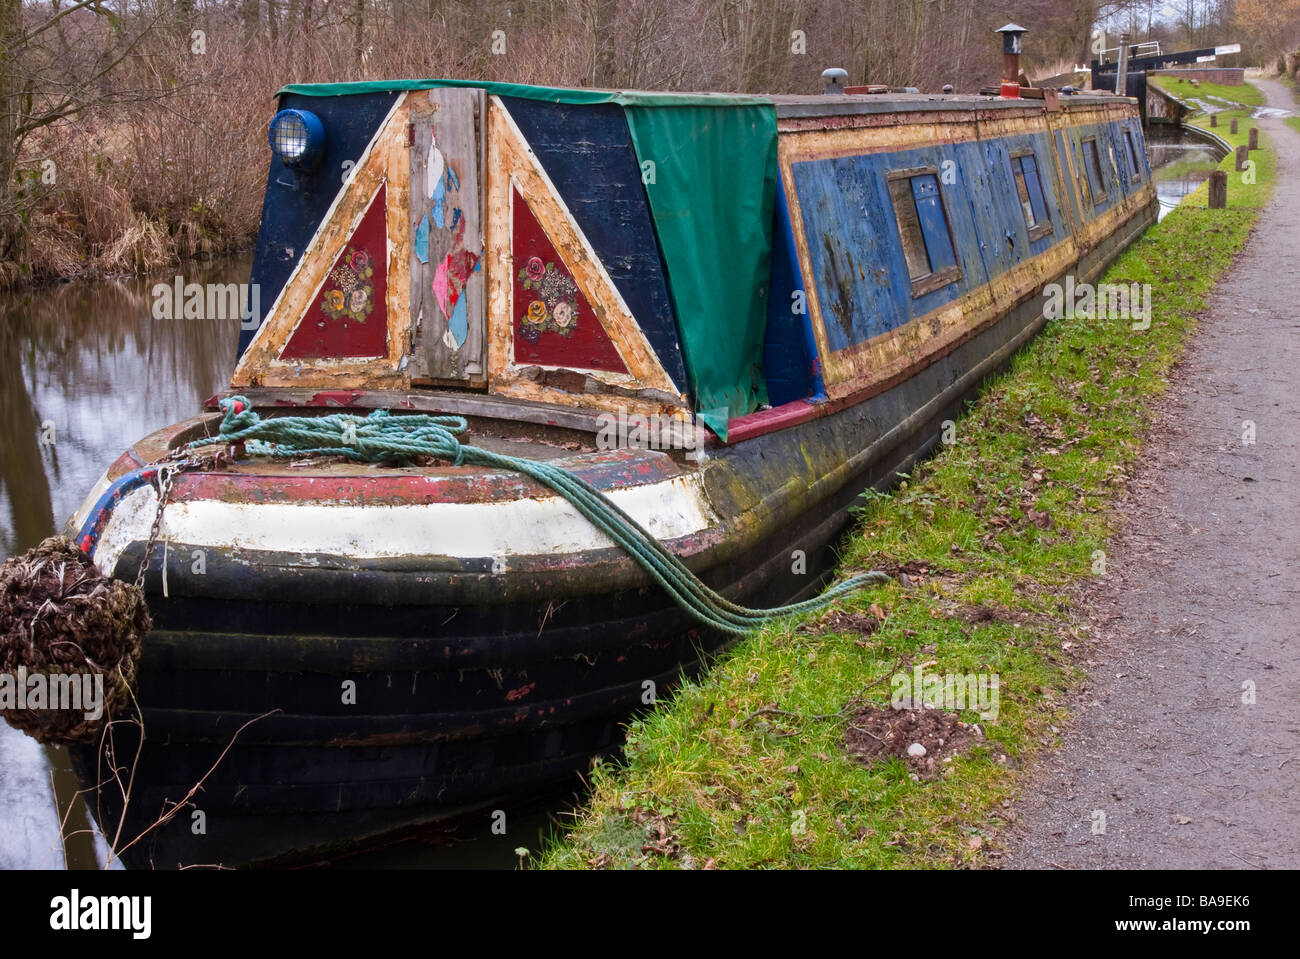 neglected 'narrow boat' in need of some TLC - Stock Image